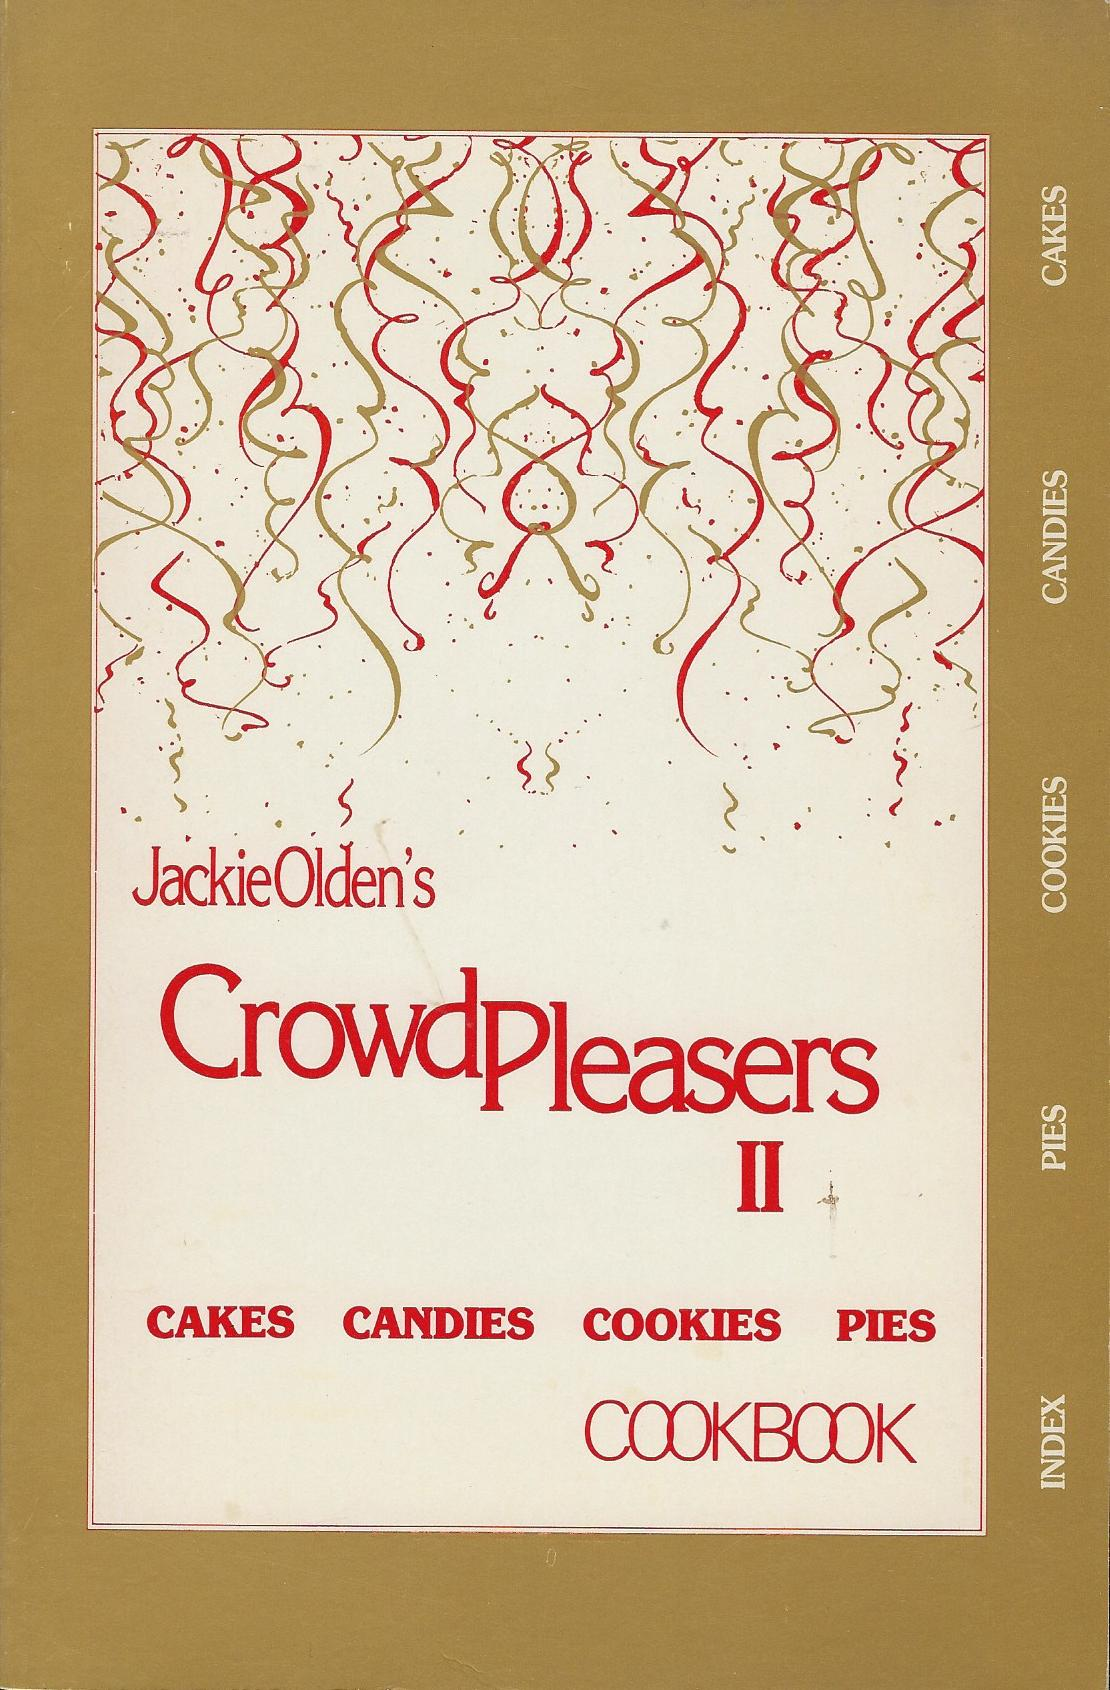 Image for JACKIE OLDEN'S CROWD PLEASERS II